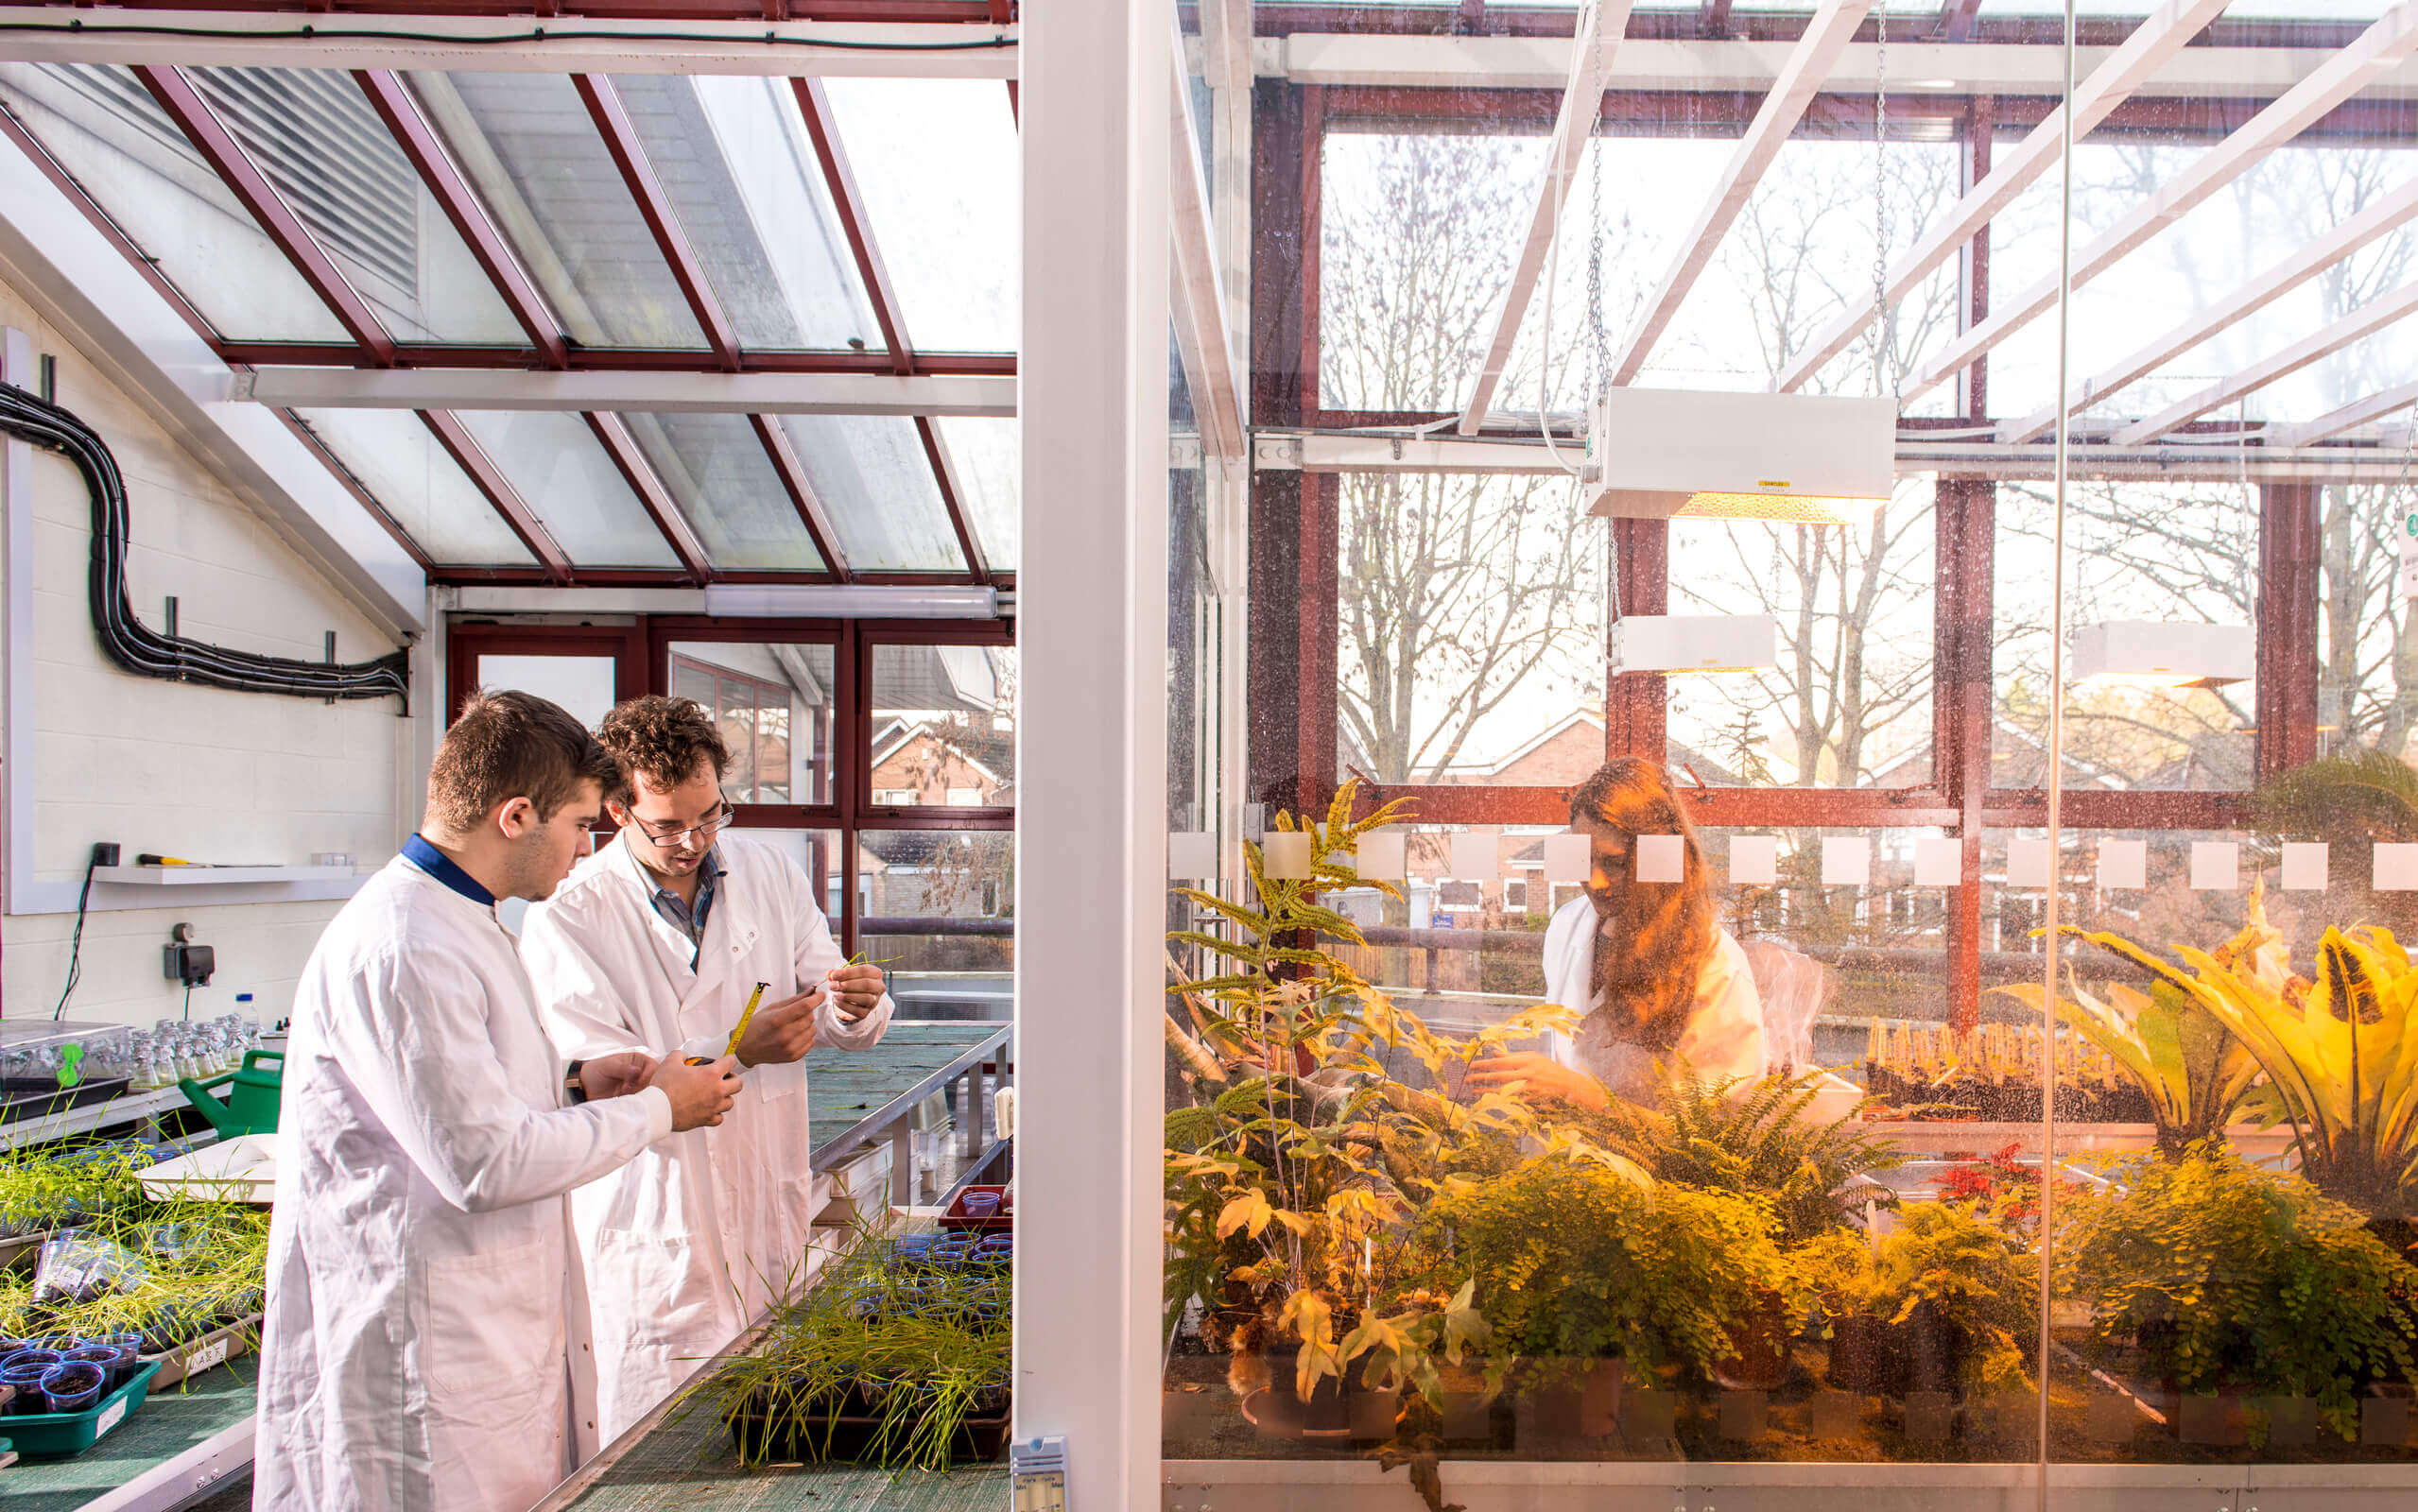 Students undertaking experiments in the glasshouse